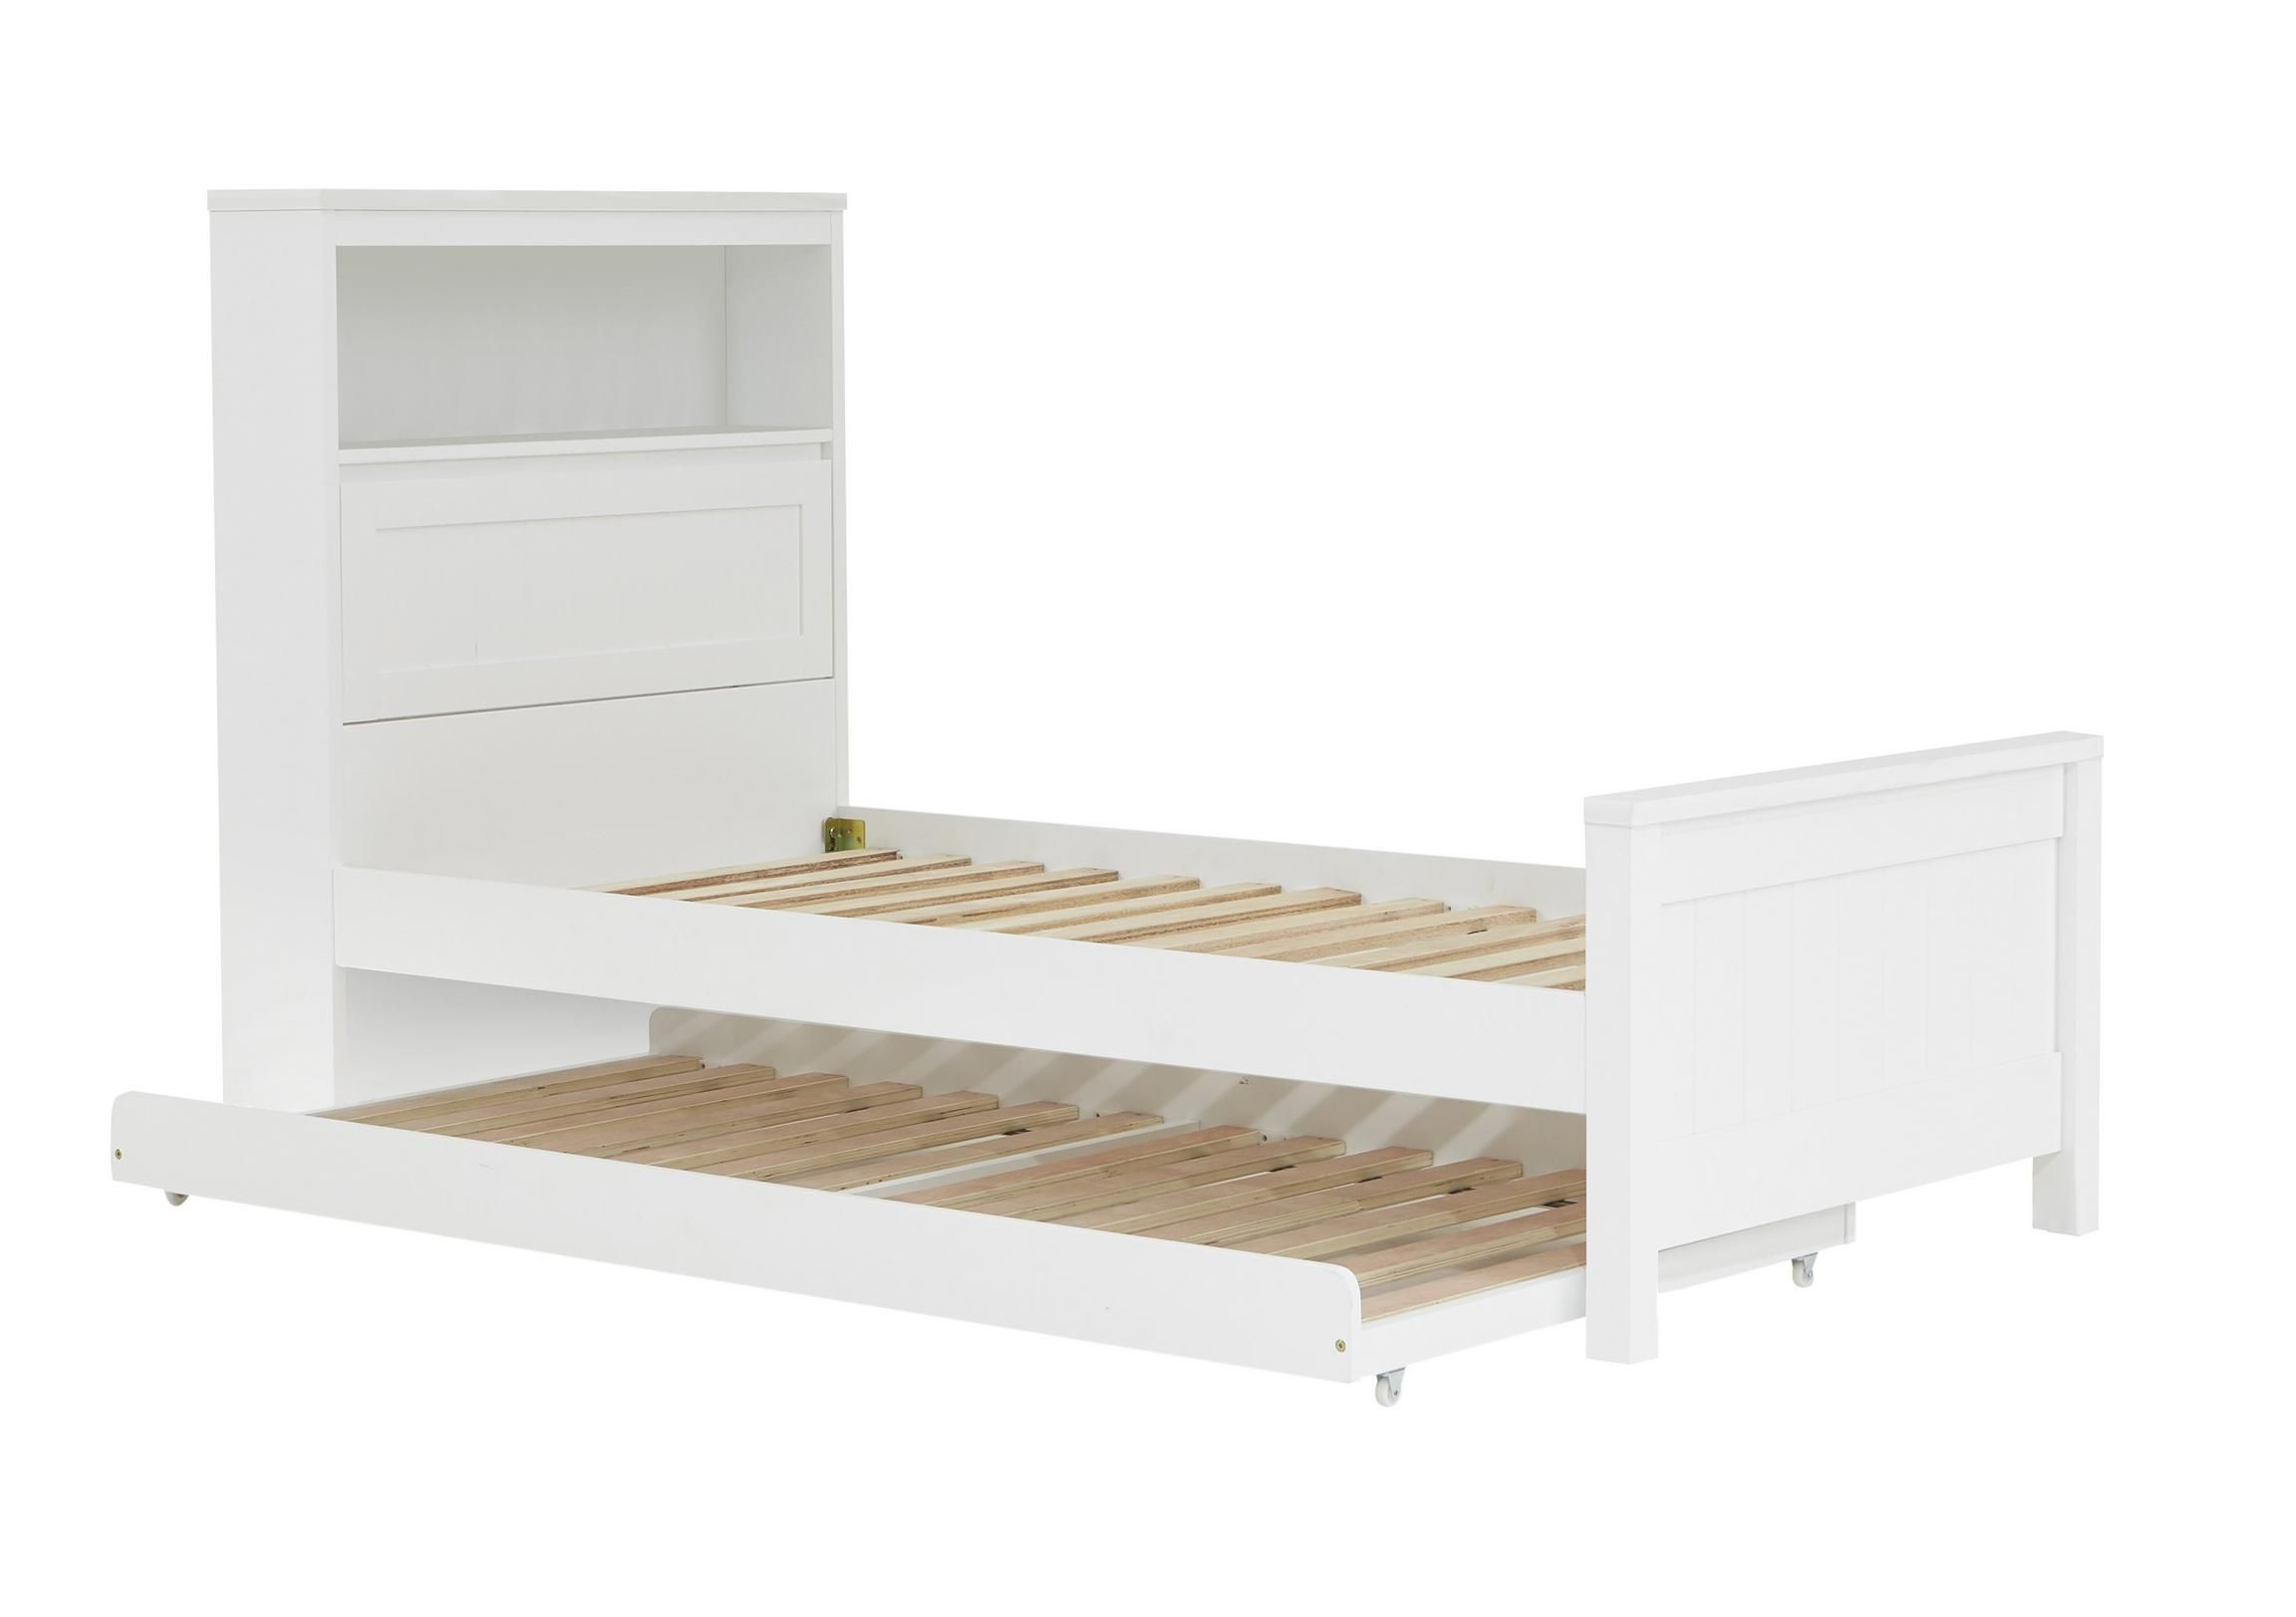 Kidu0027s Single Trundle Bed With A Solid Hardwood Frame. Child Friendly, Non  Toxic